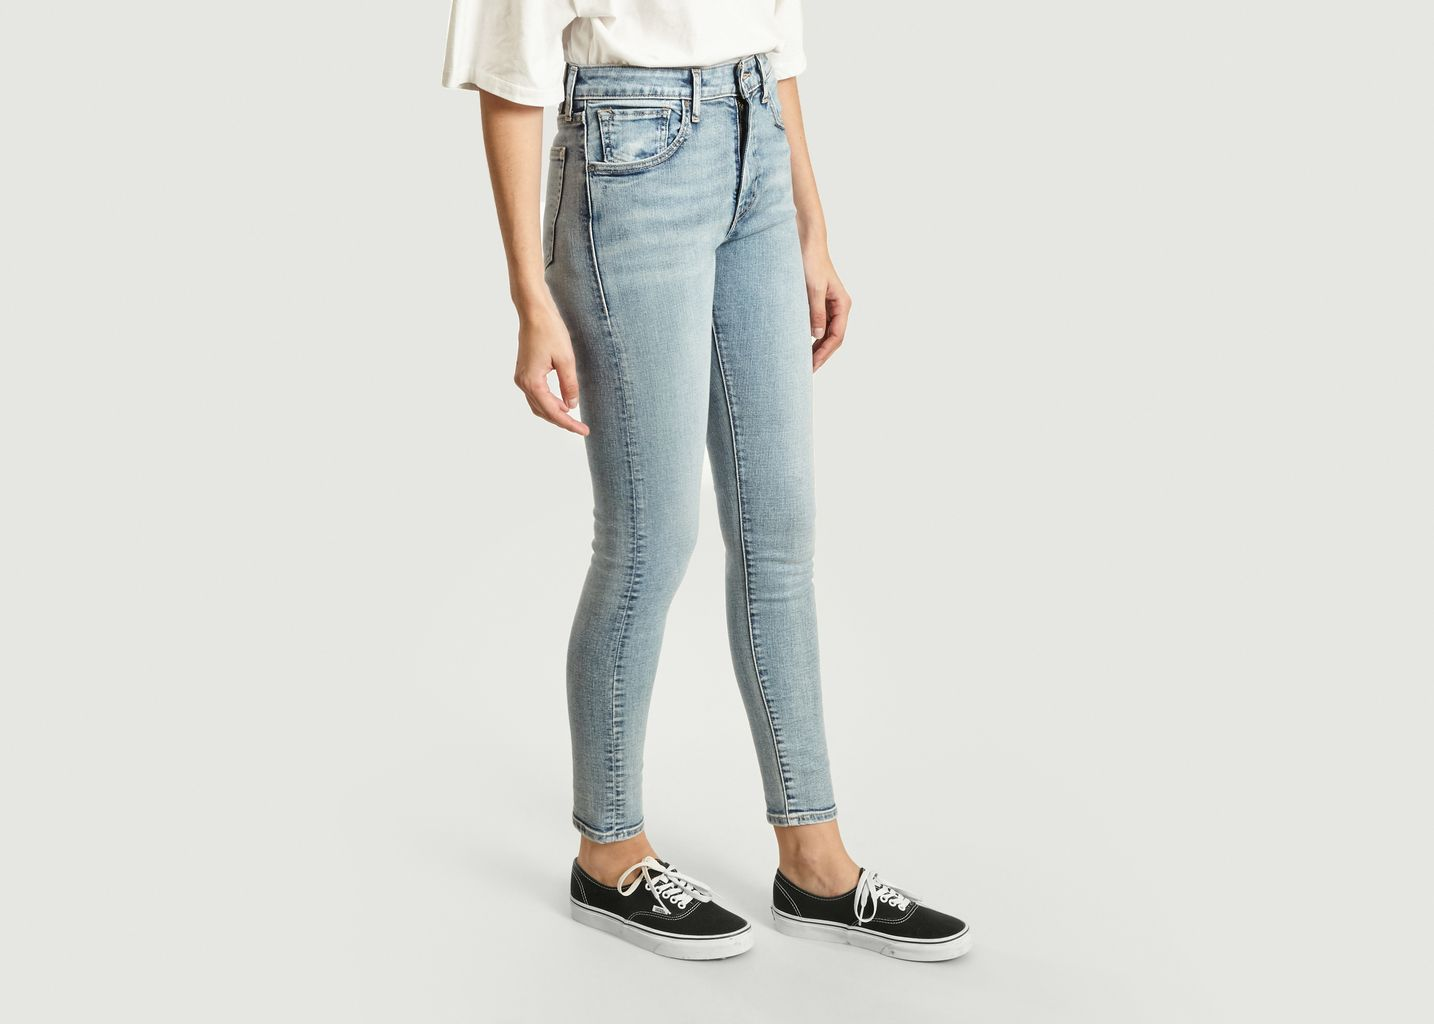 Jean 721 Skinny fit - Levi's Made and Crafted